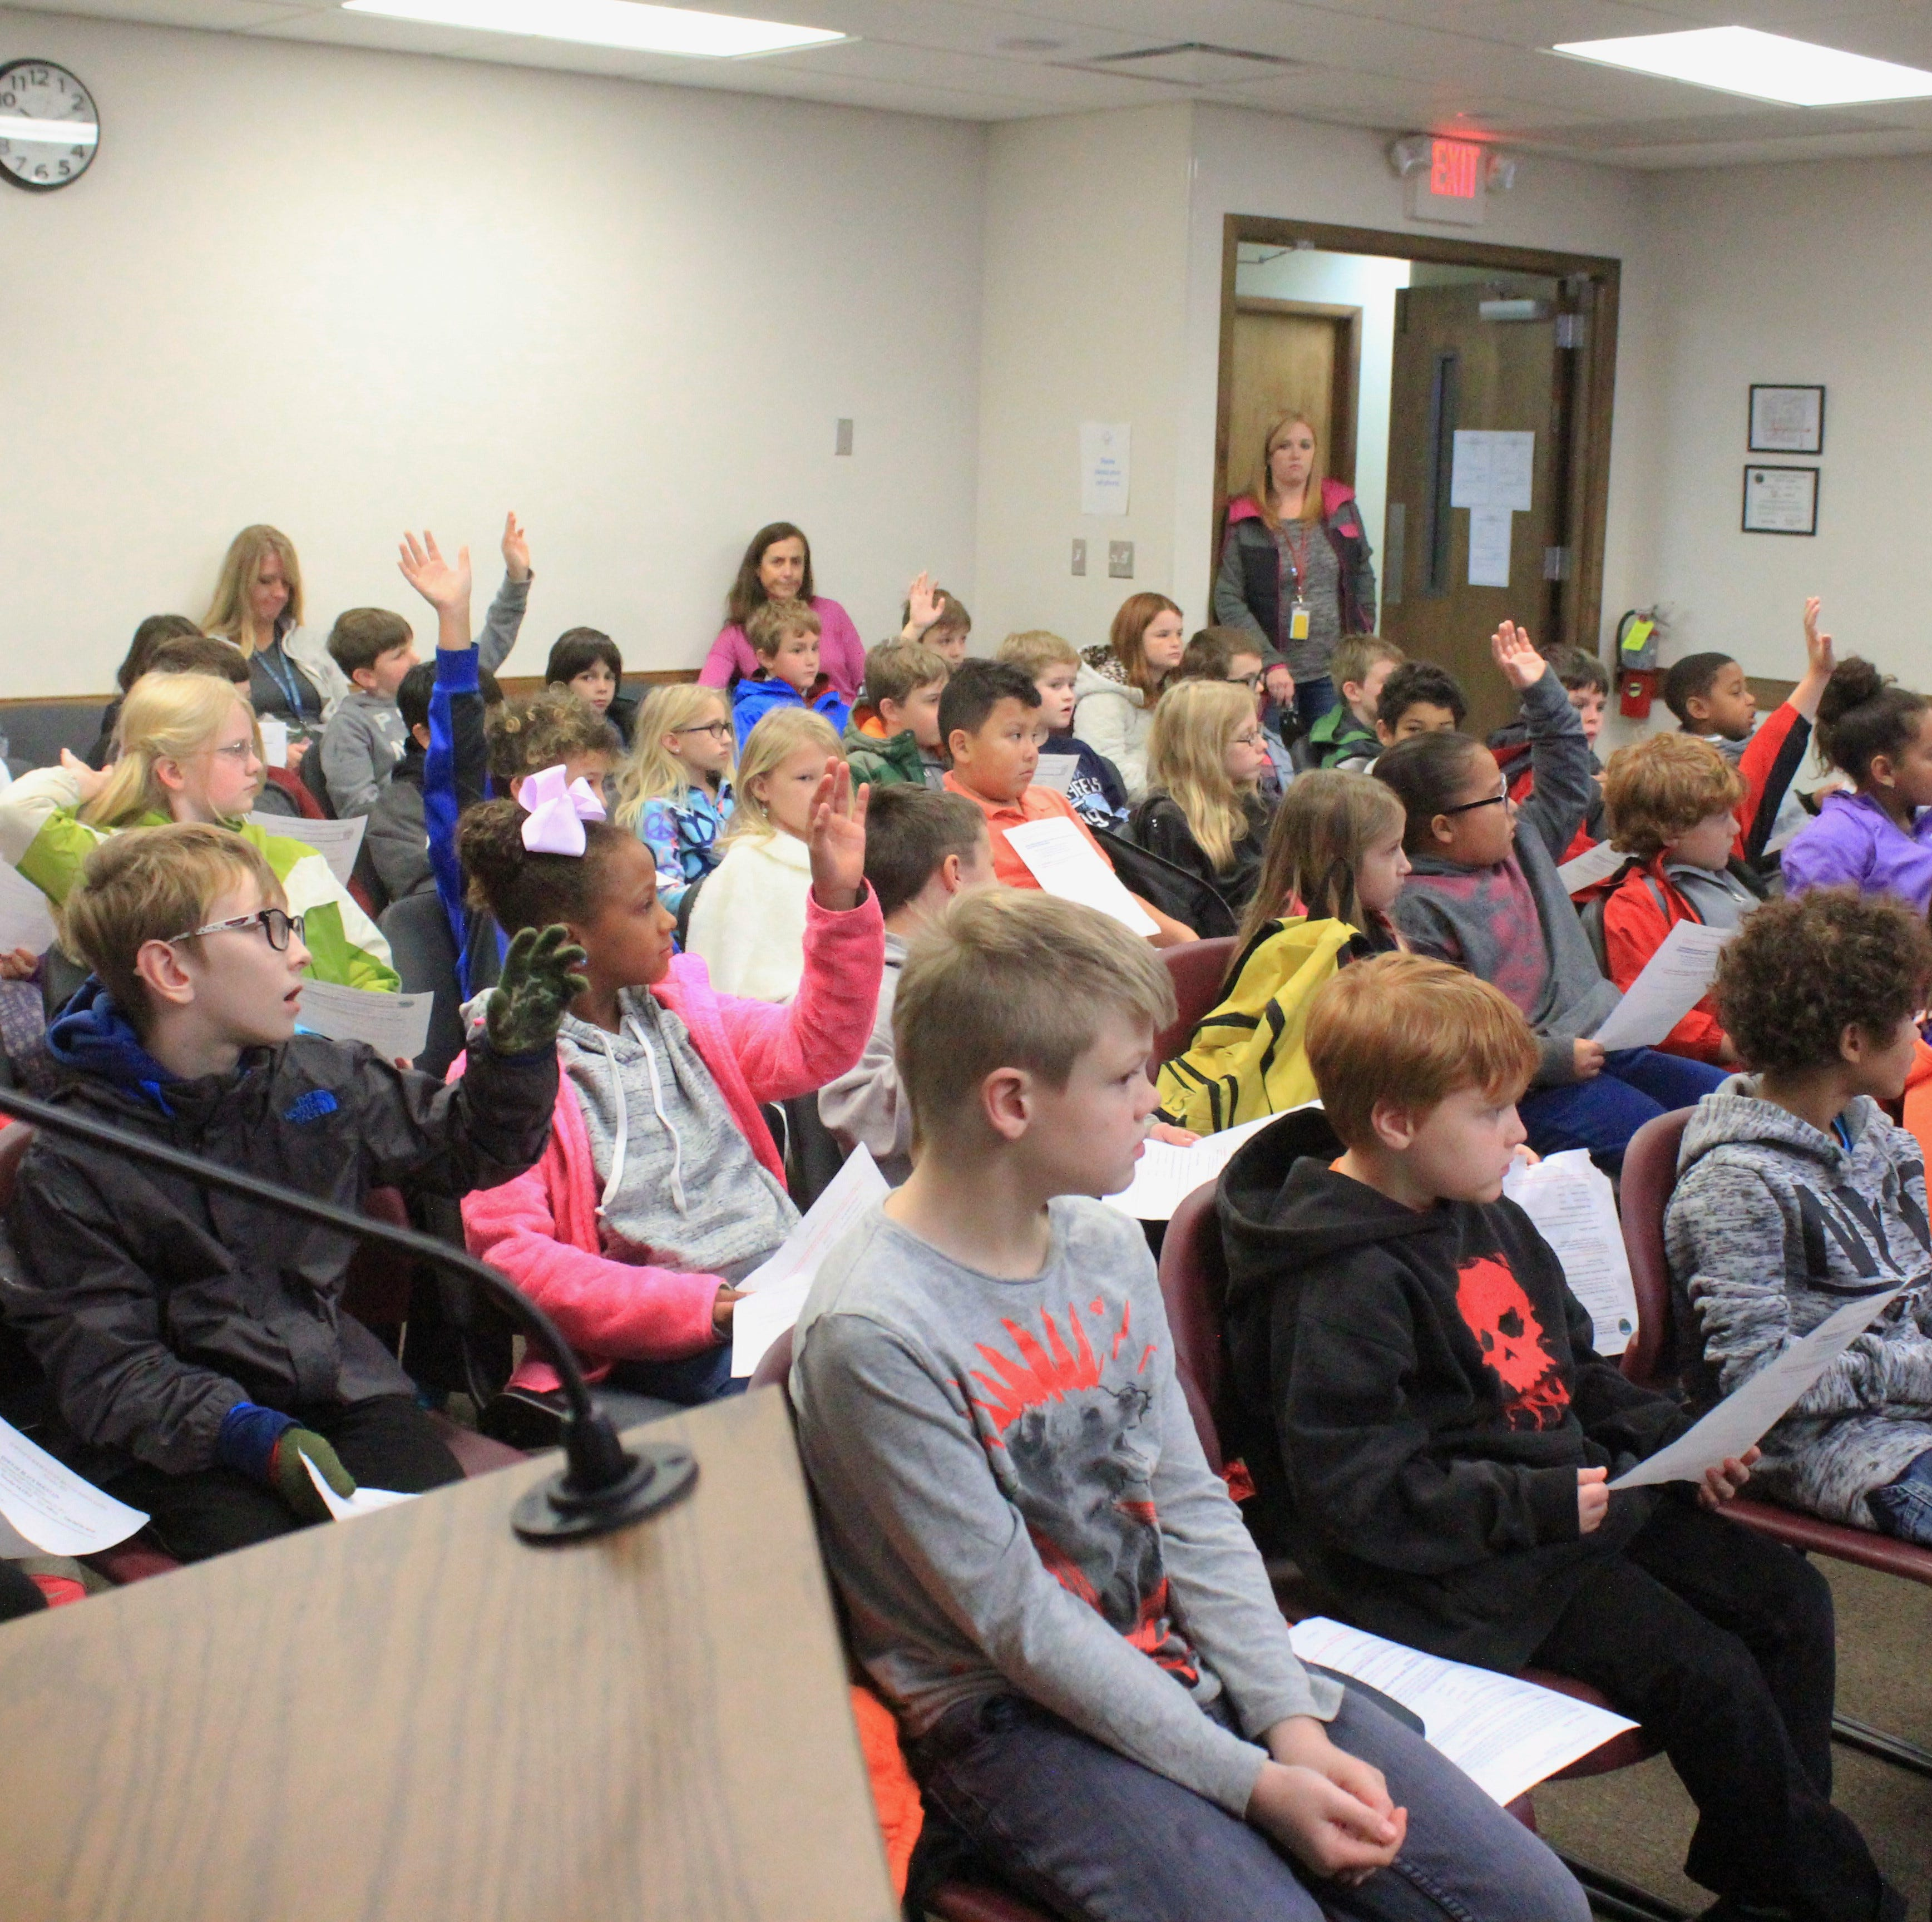 Third-graders learn about government at Town Hall Day